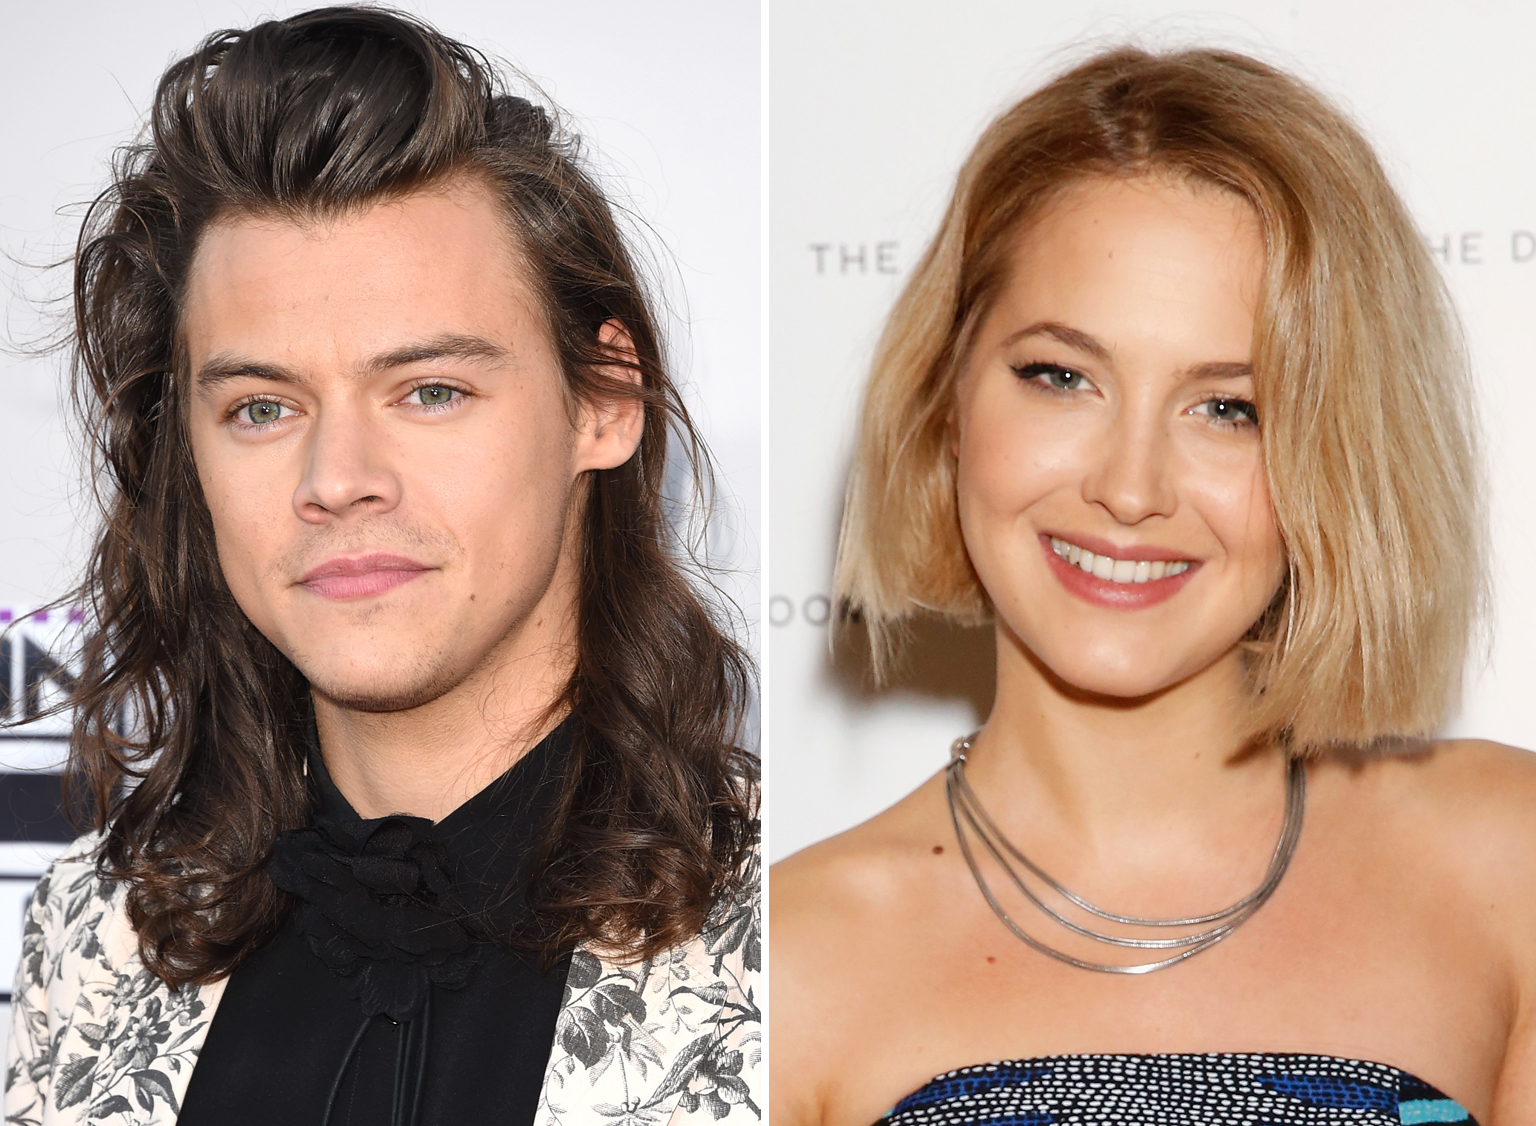 Harry Styles Is Reportedly Dating a Chef, and Instagram Has Receipts